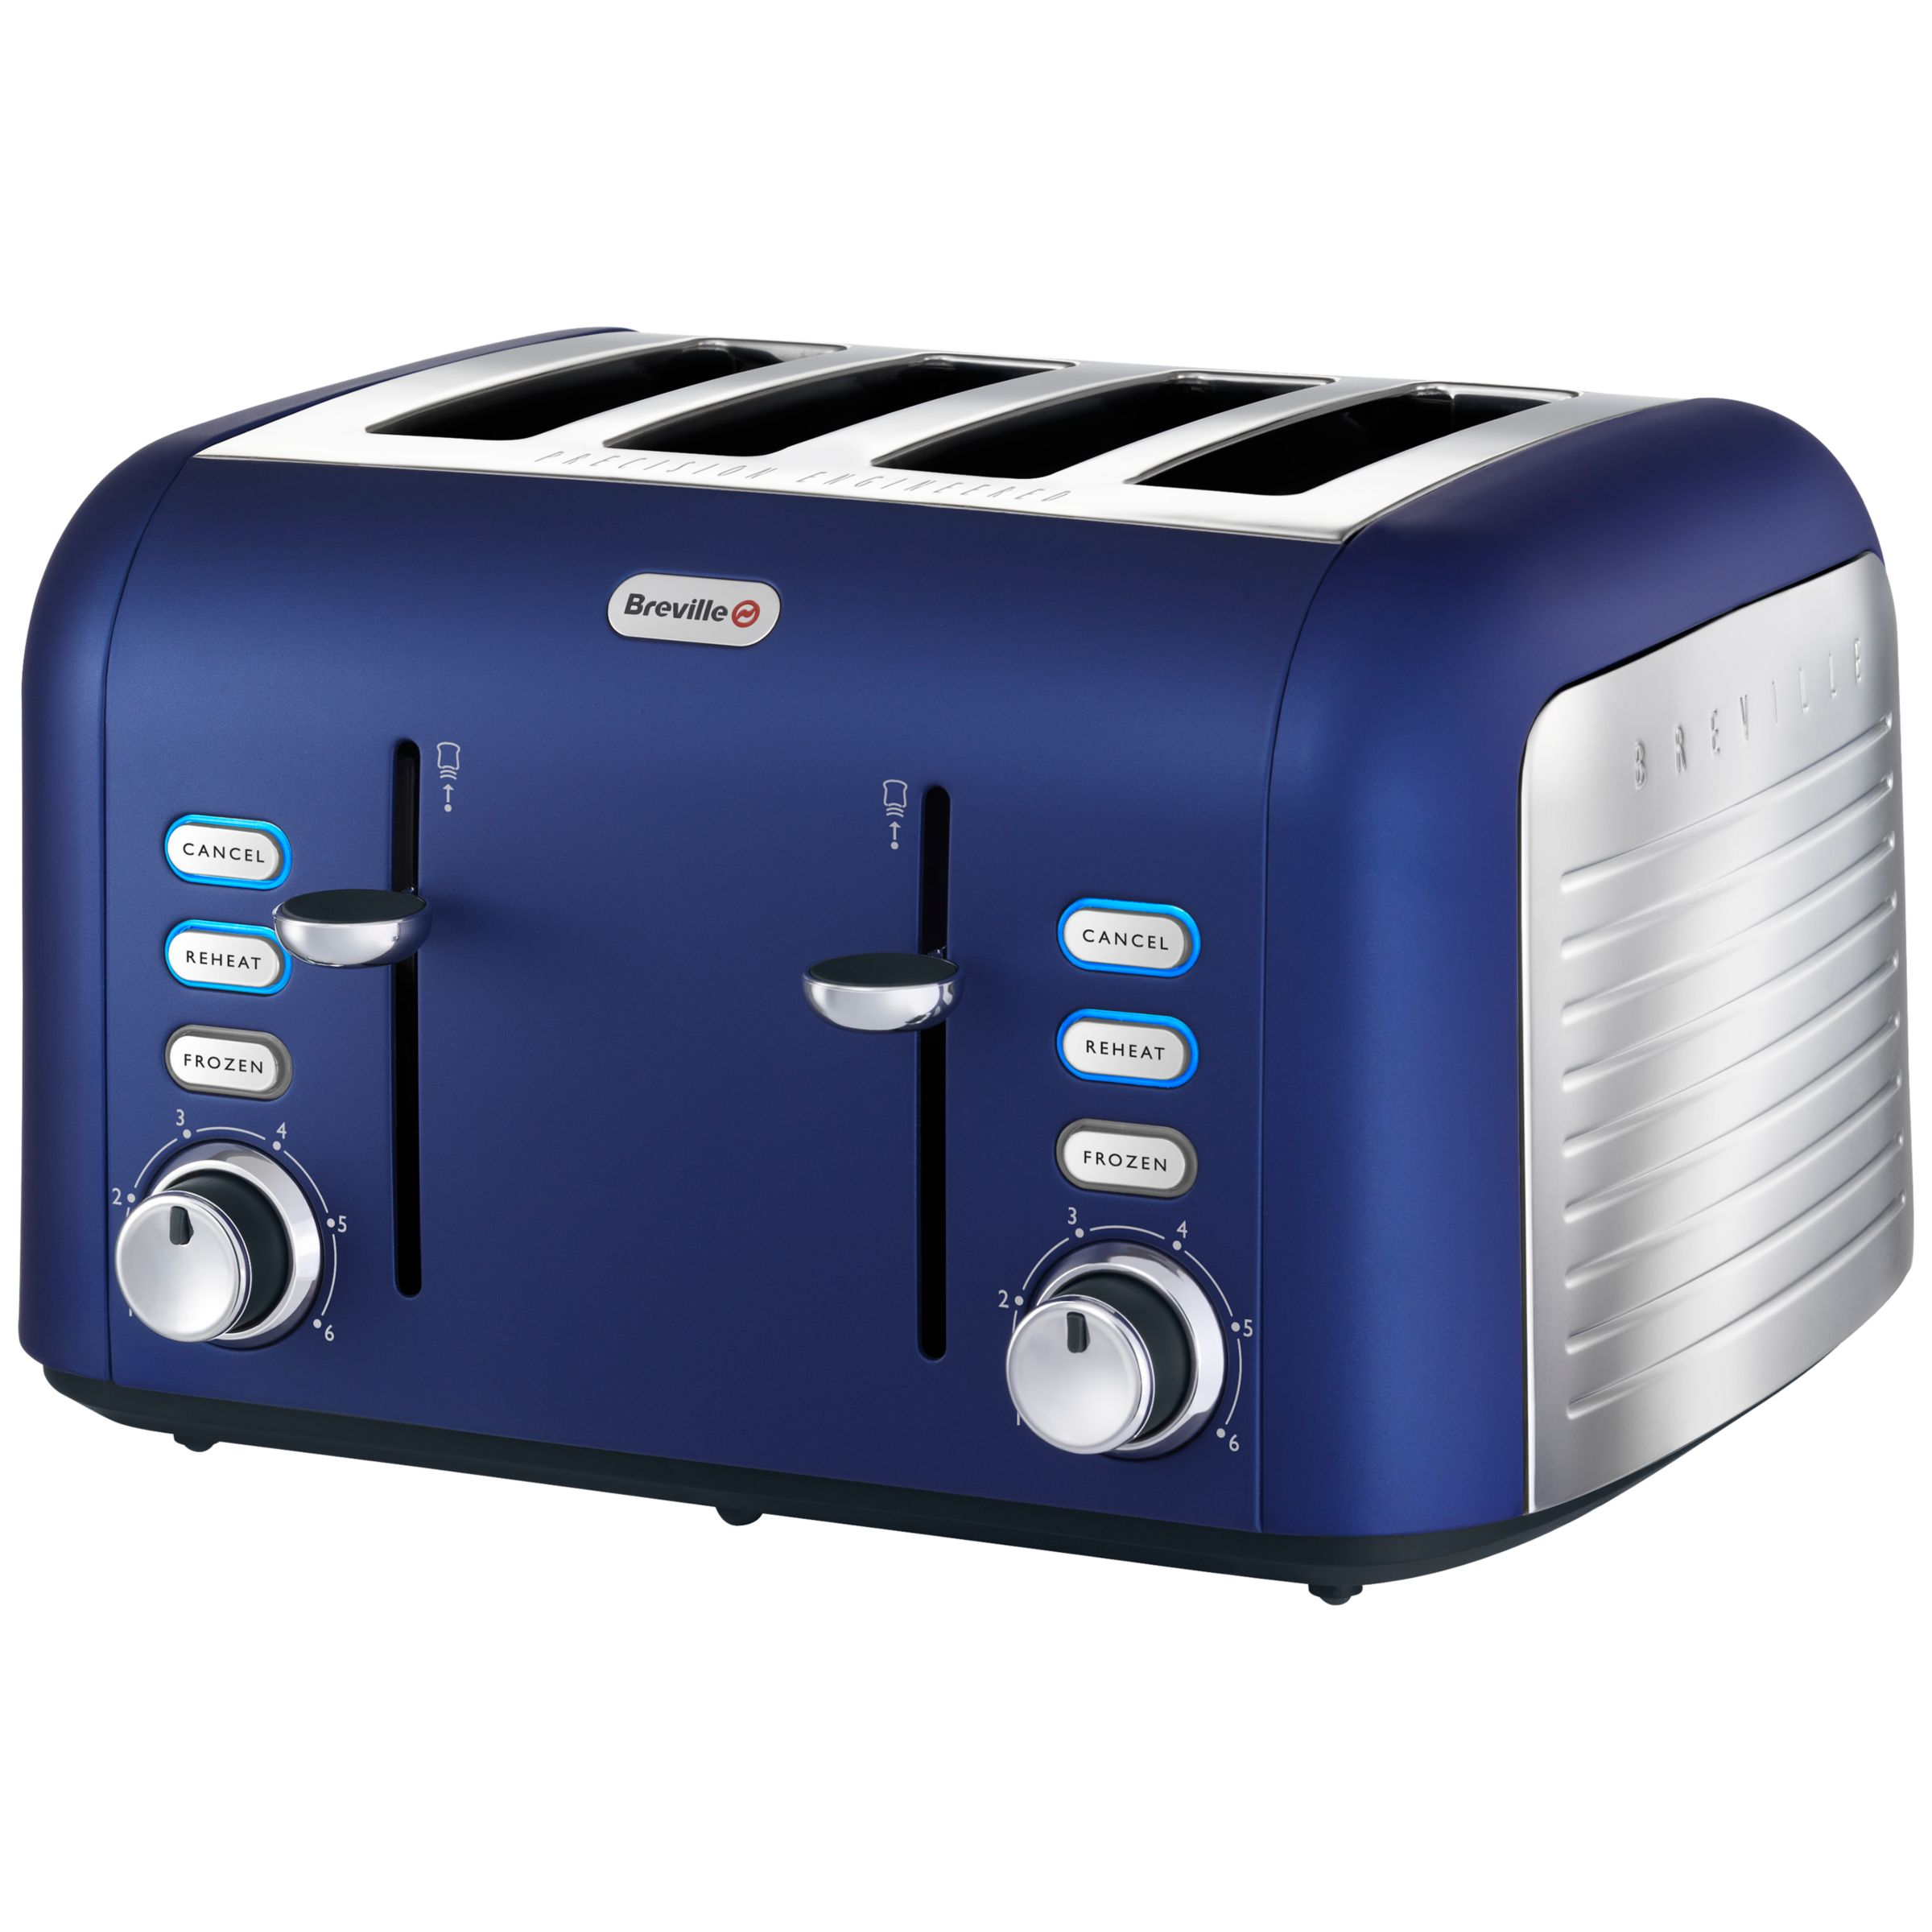 Kitchen Collection Uk Buy Cheap Breville Toaster Compare Toasters Prices For